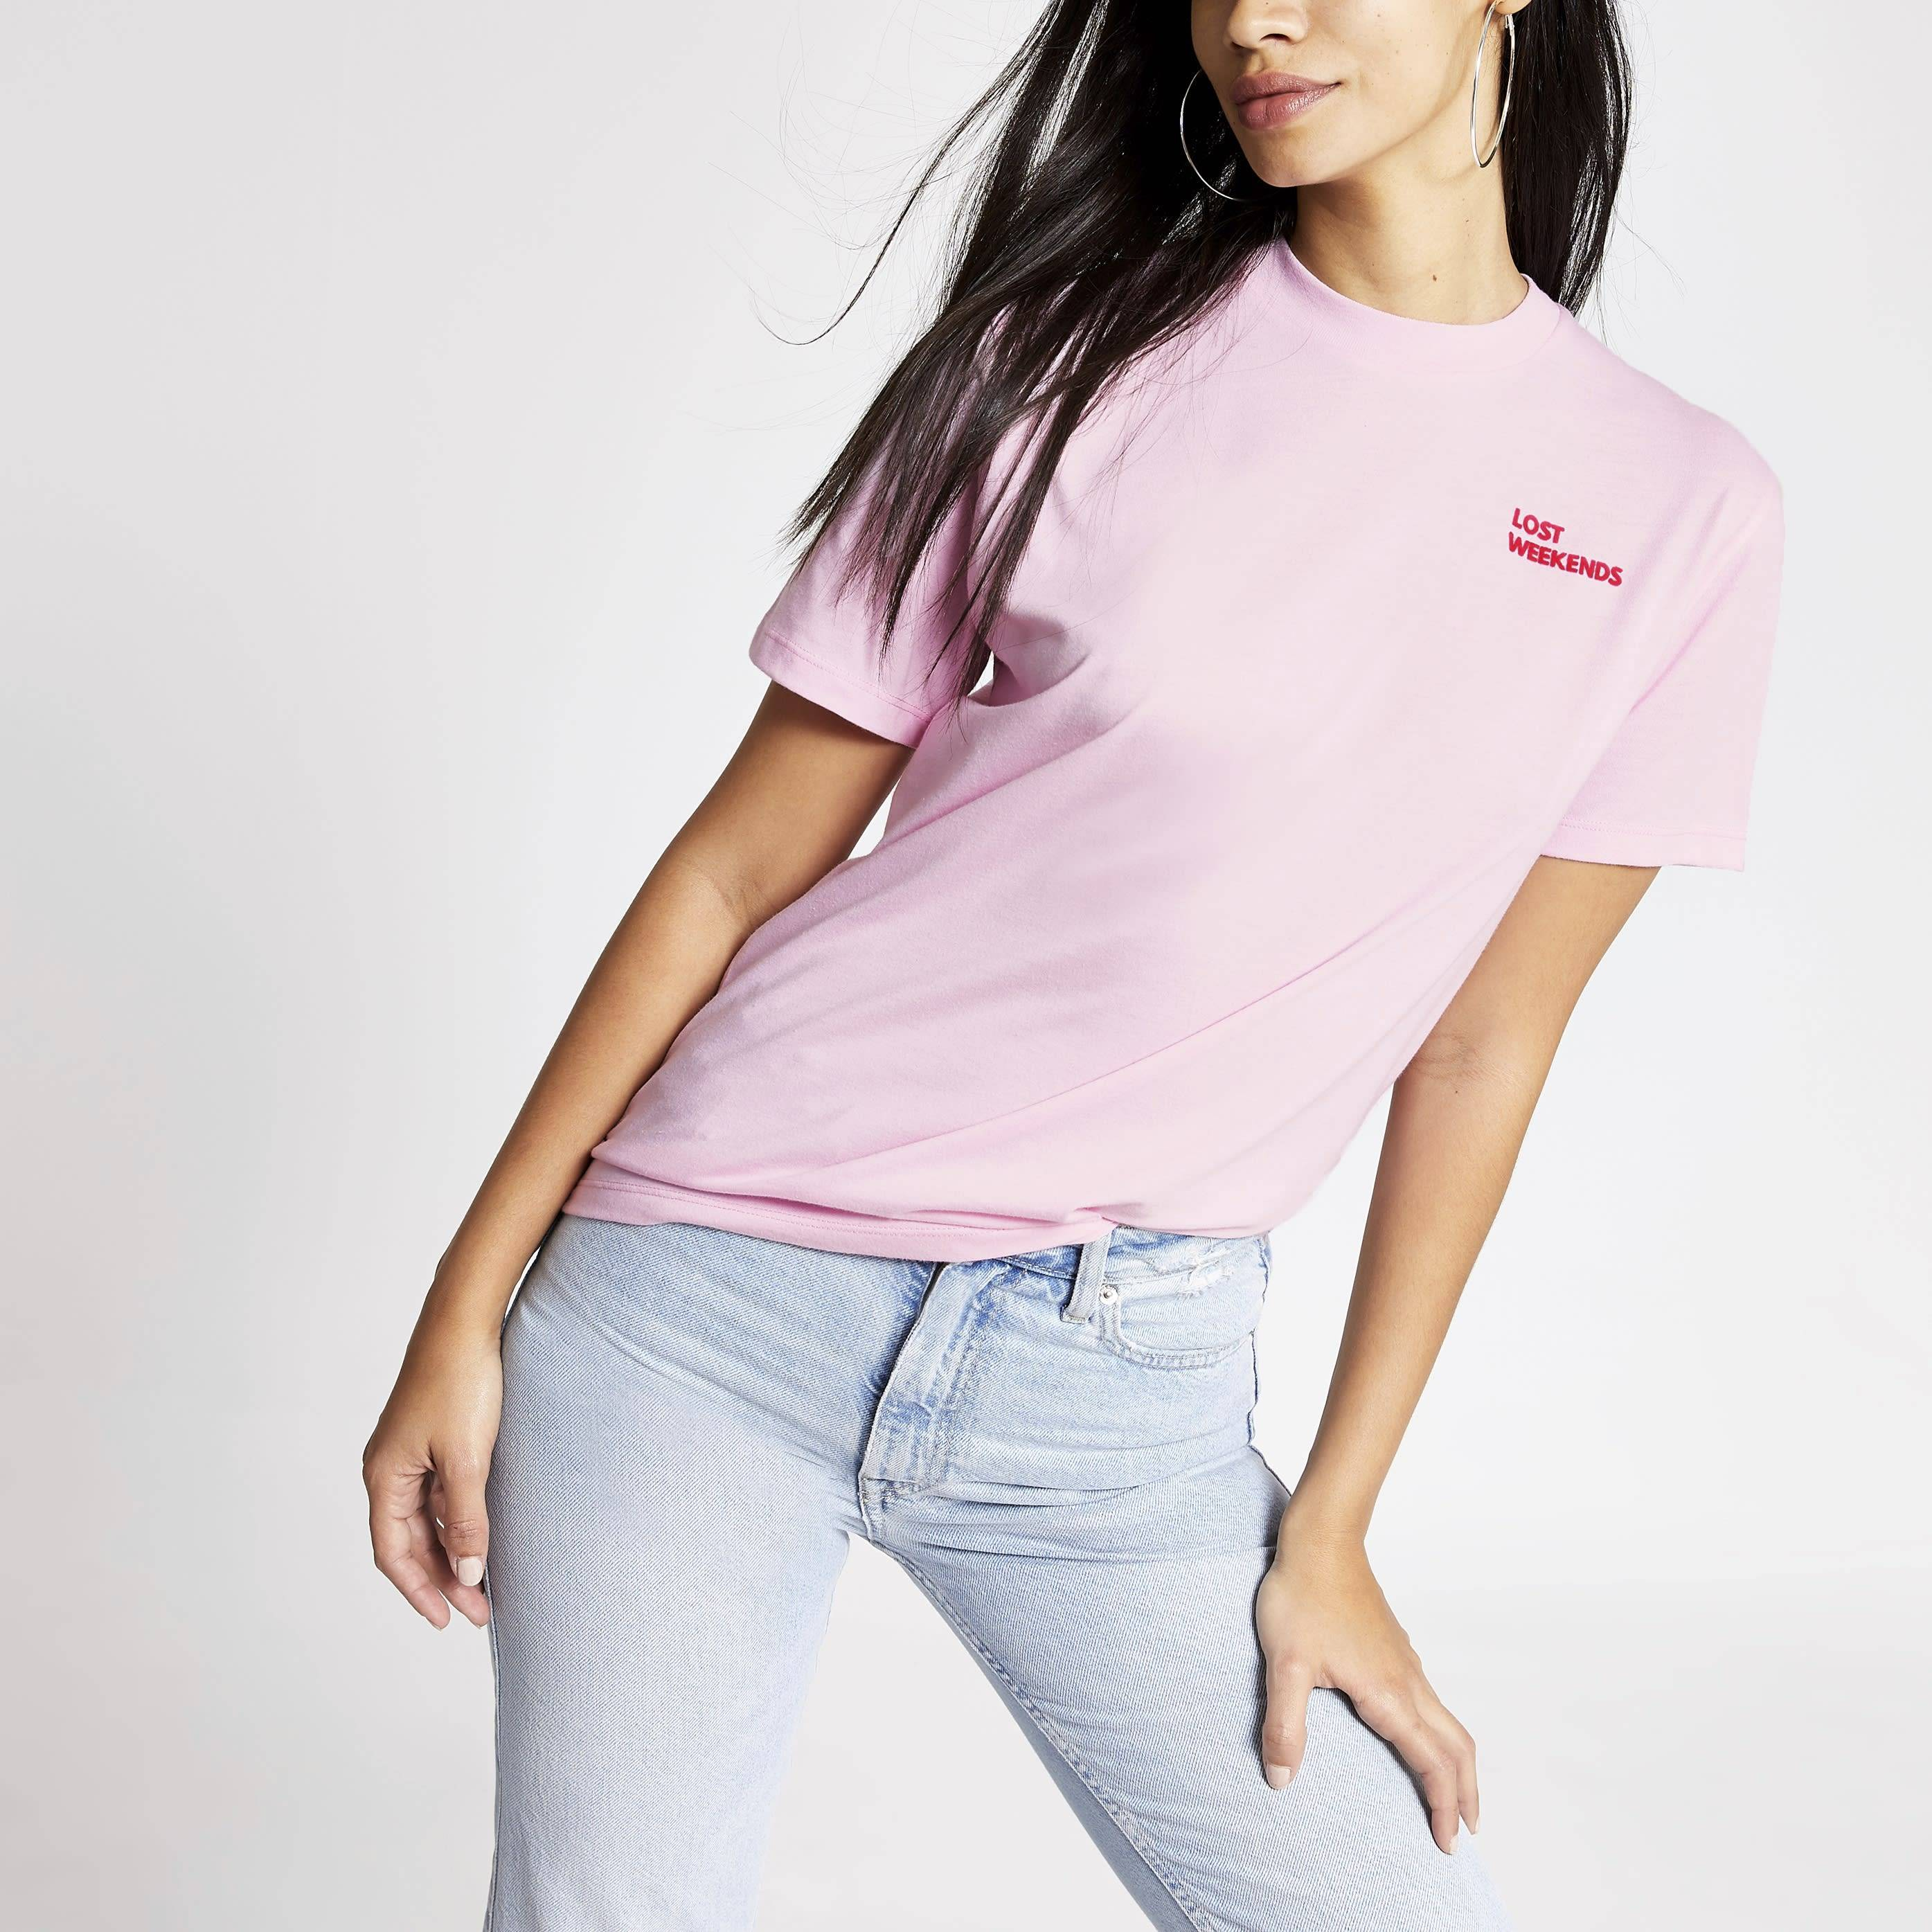 River Island Womens Tee & Cake Pink 'Lost weekends' T-shirt (XL)